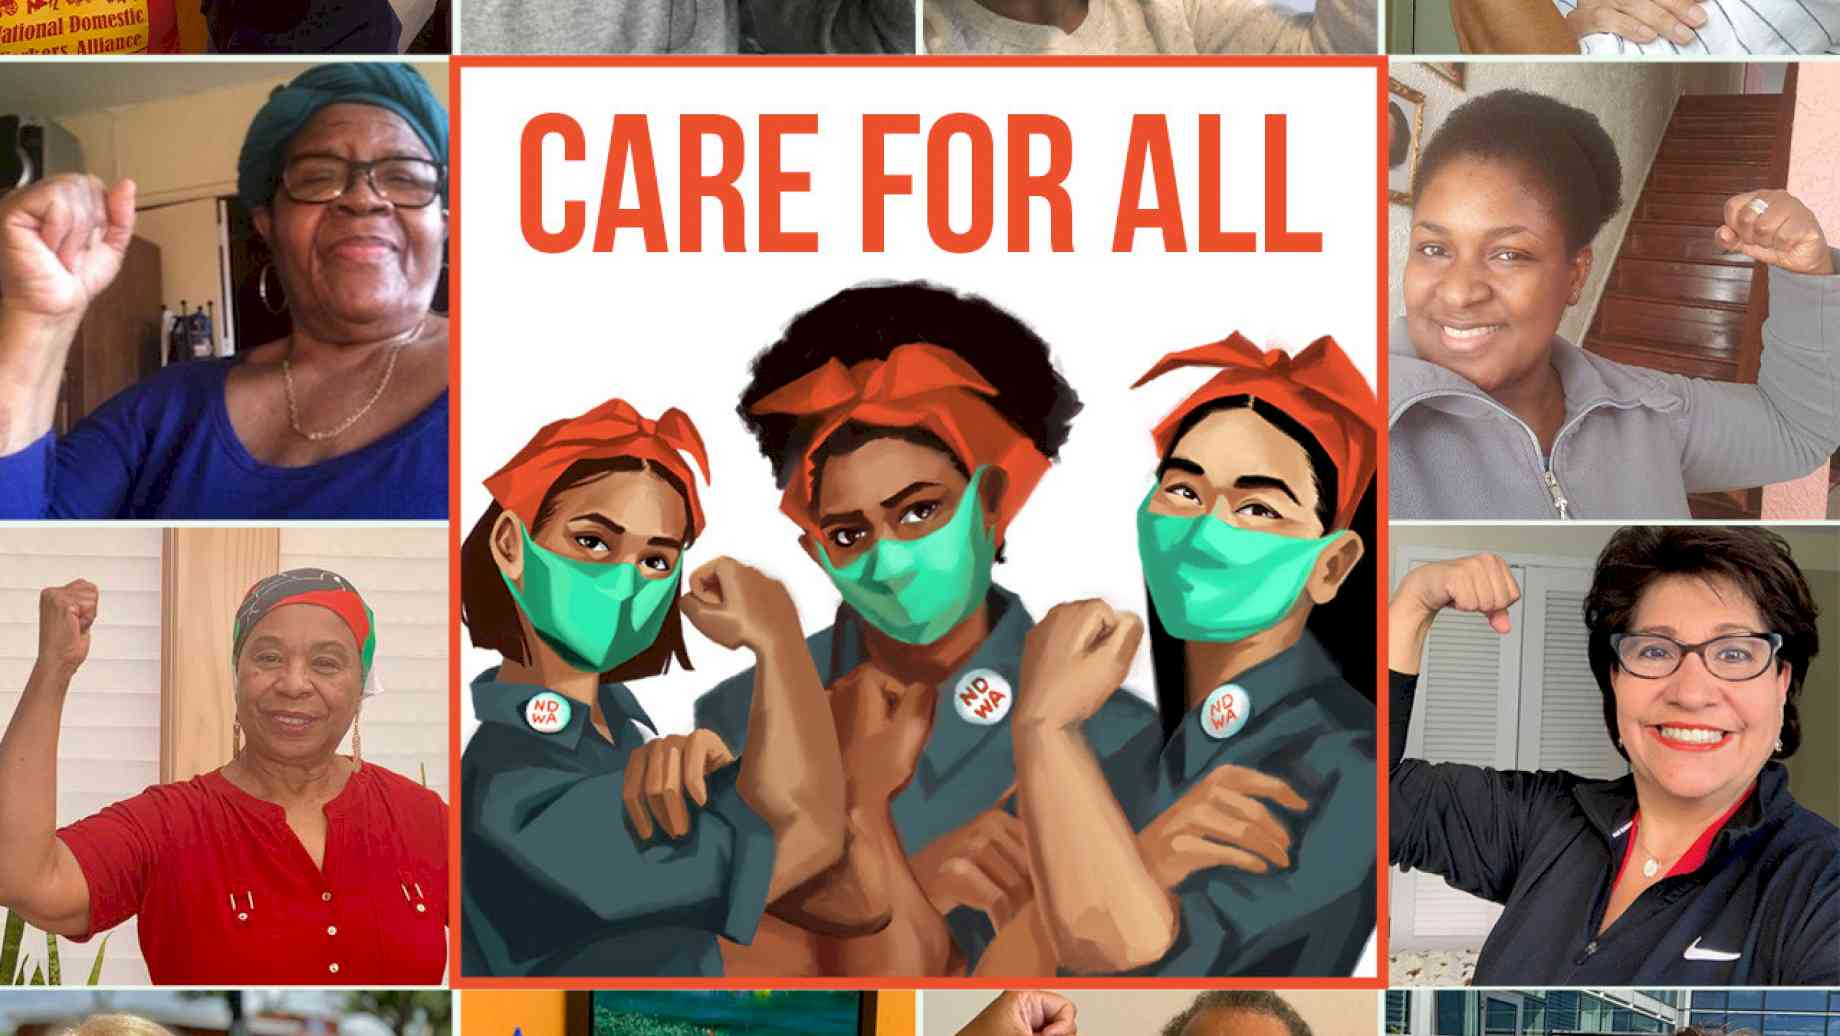 #careforall. A digital drawing of three women wearing face masks and coveralls, flexing their biceps like Rosie the Riveter, surrounded by photographs of women of color doing the same. Credit: The National Domestic Workers Alliance